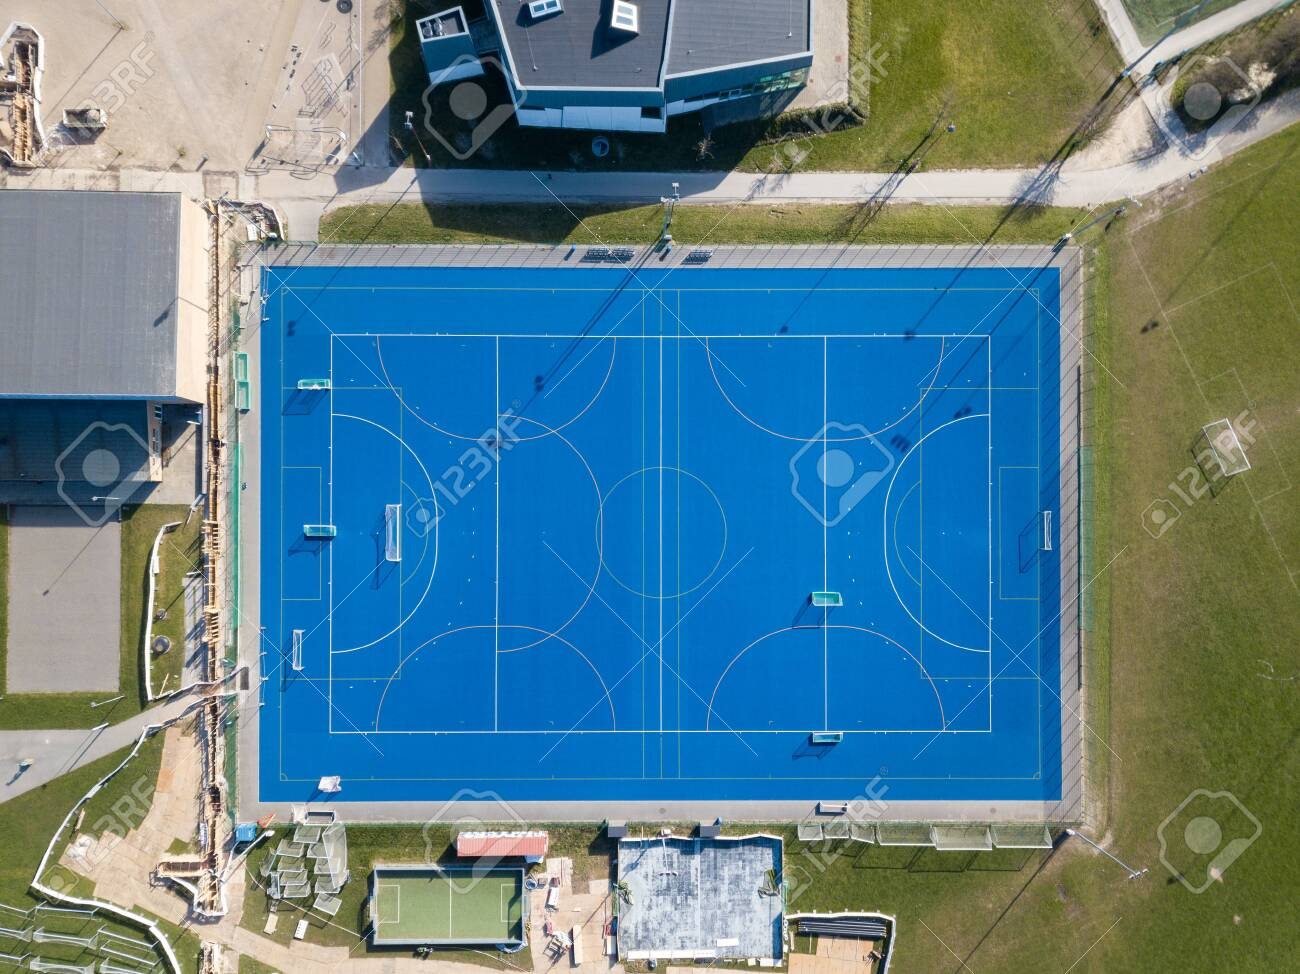 Valby, Denmark - March 22, 2020: Top down aerial drone view of a blue soccer field. - 144115455